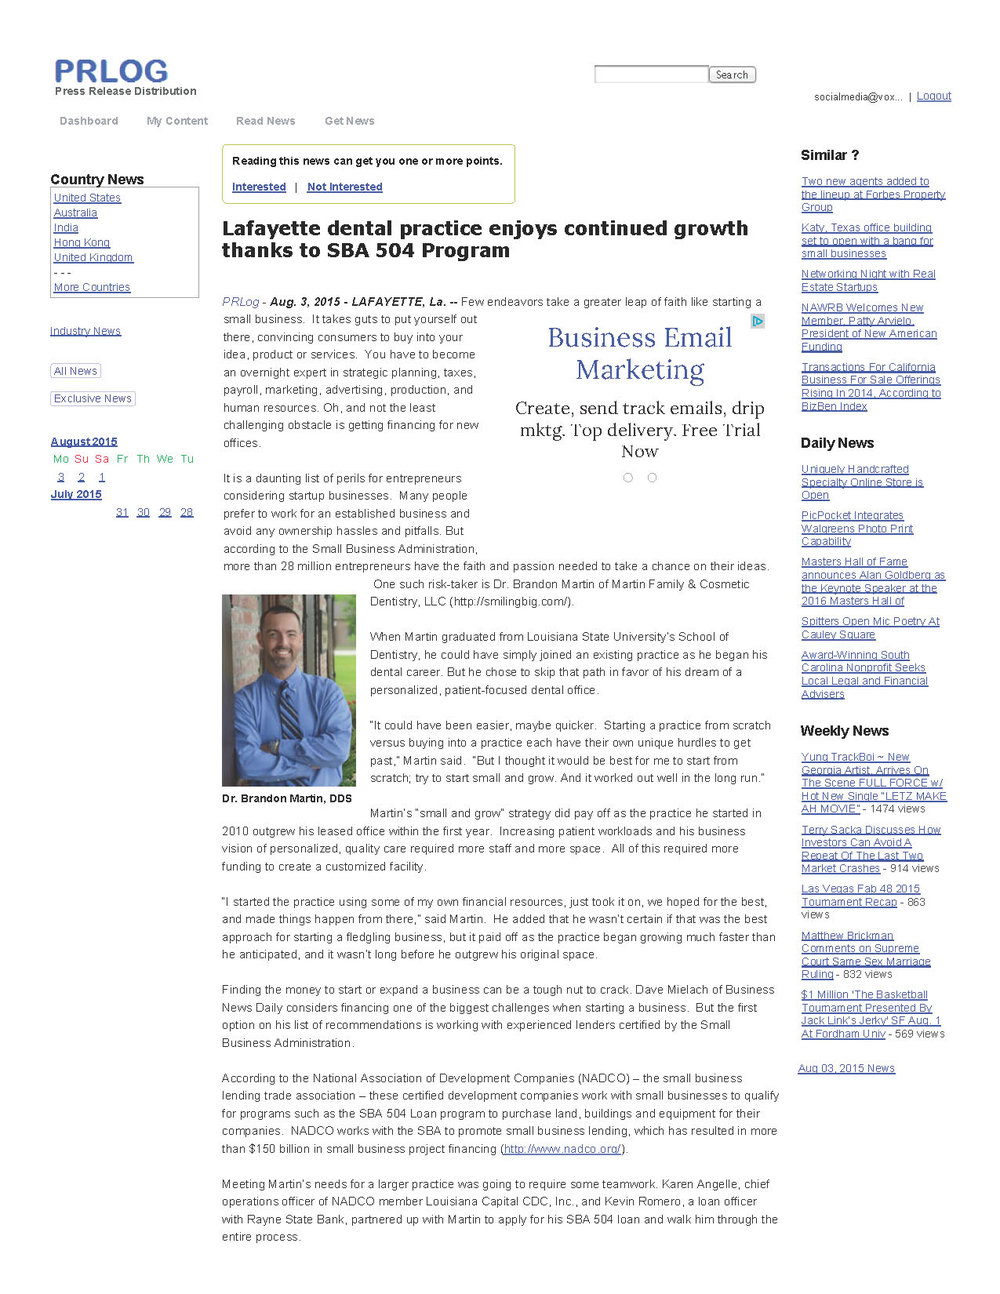 Lafayette dental practice enjoys continued growth thanks to SBA 504 Program _ PRLog_Page_1.jpg